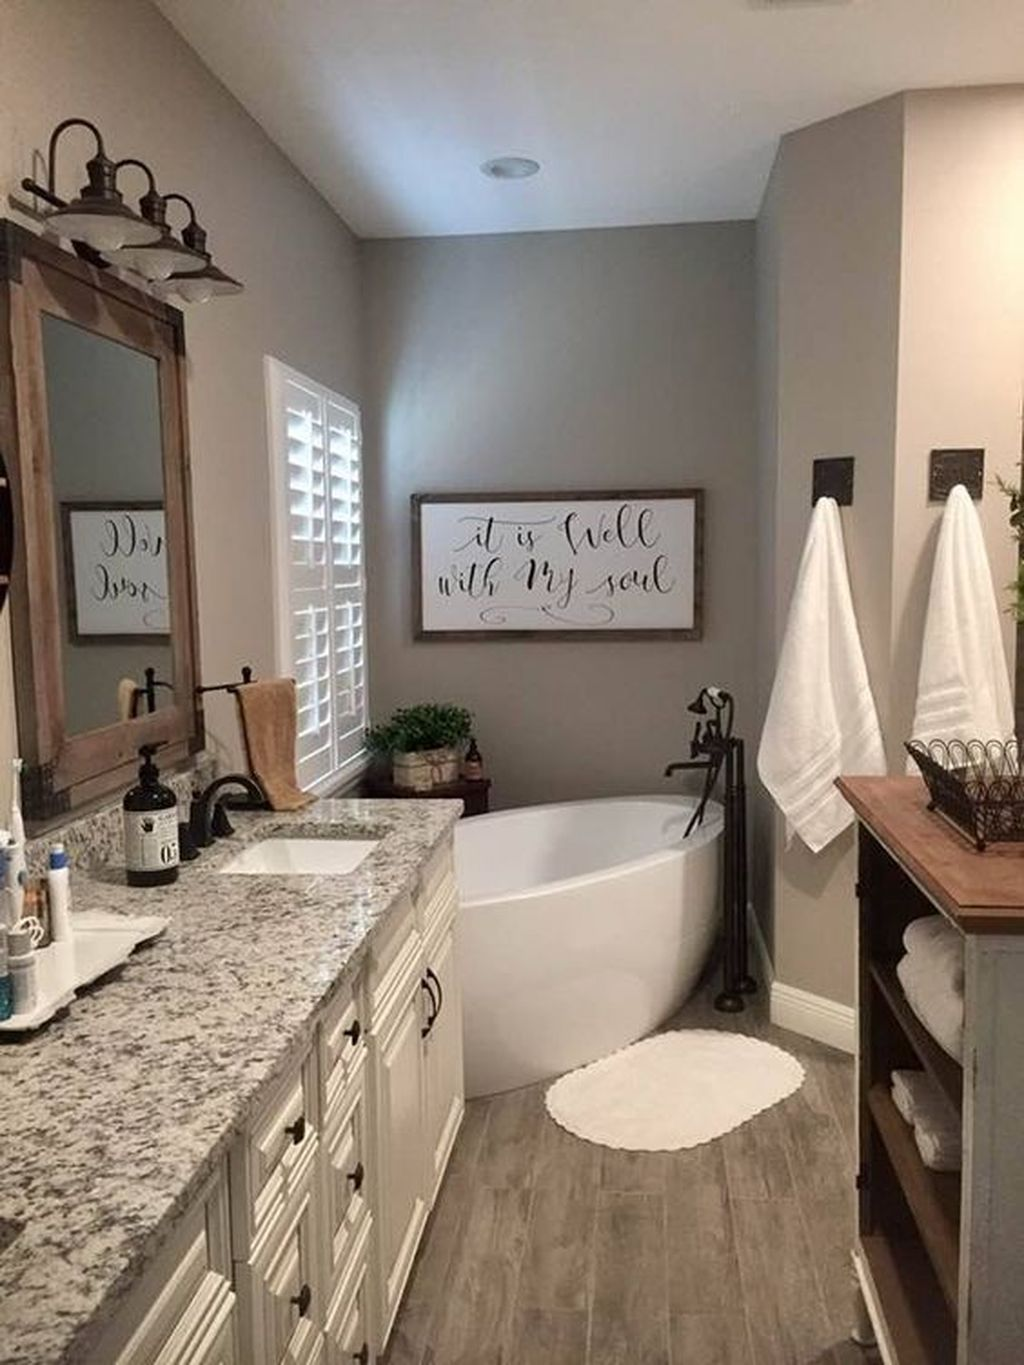 3 Awesome Winter Bathroom Decor You Need to Have - SWEETYHOMEE